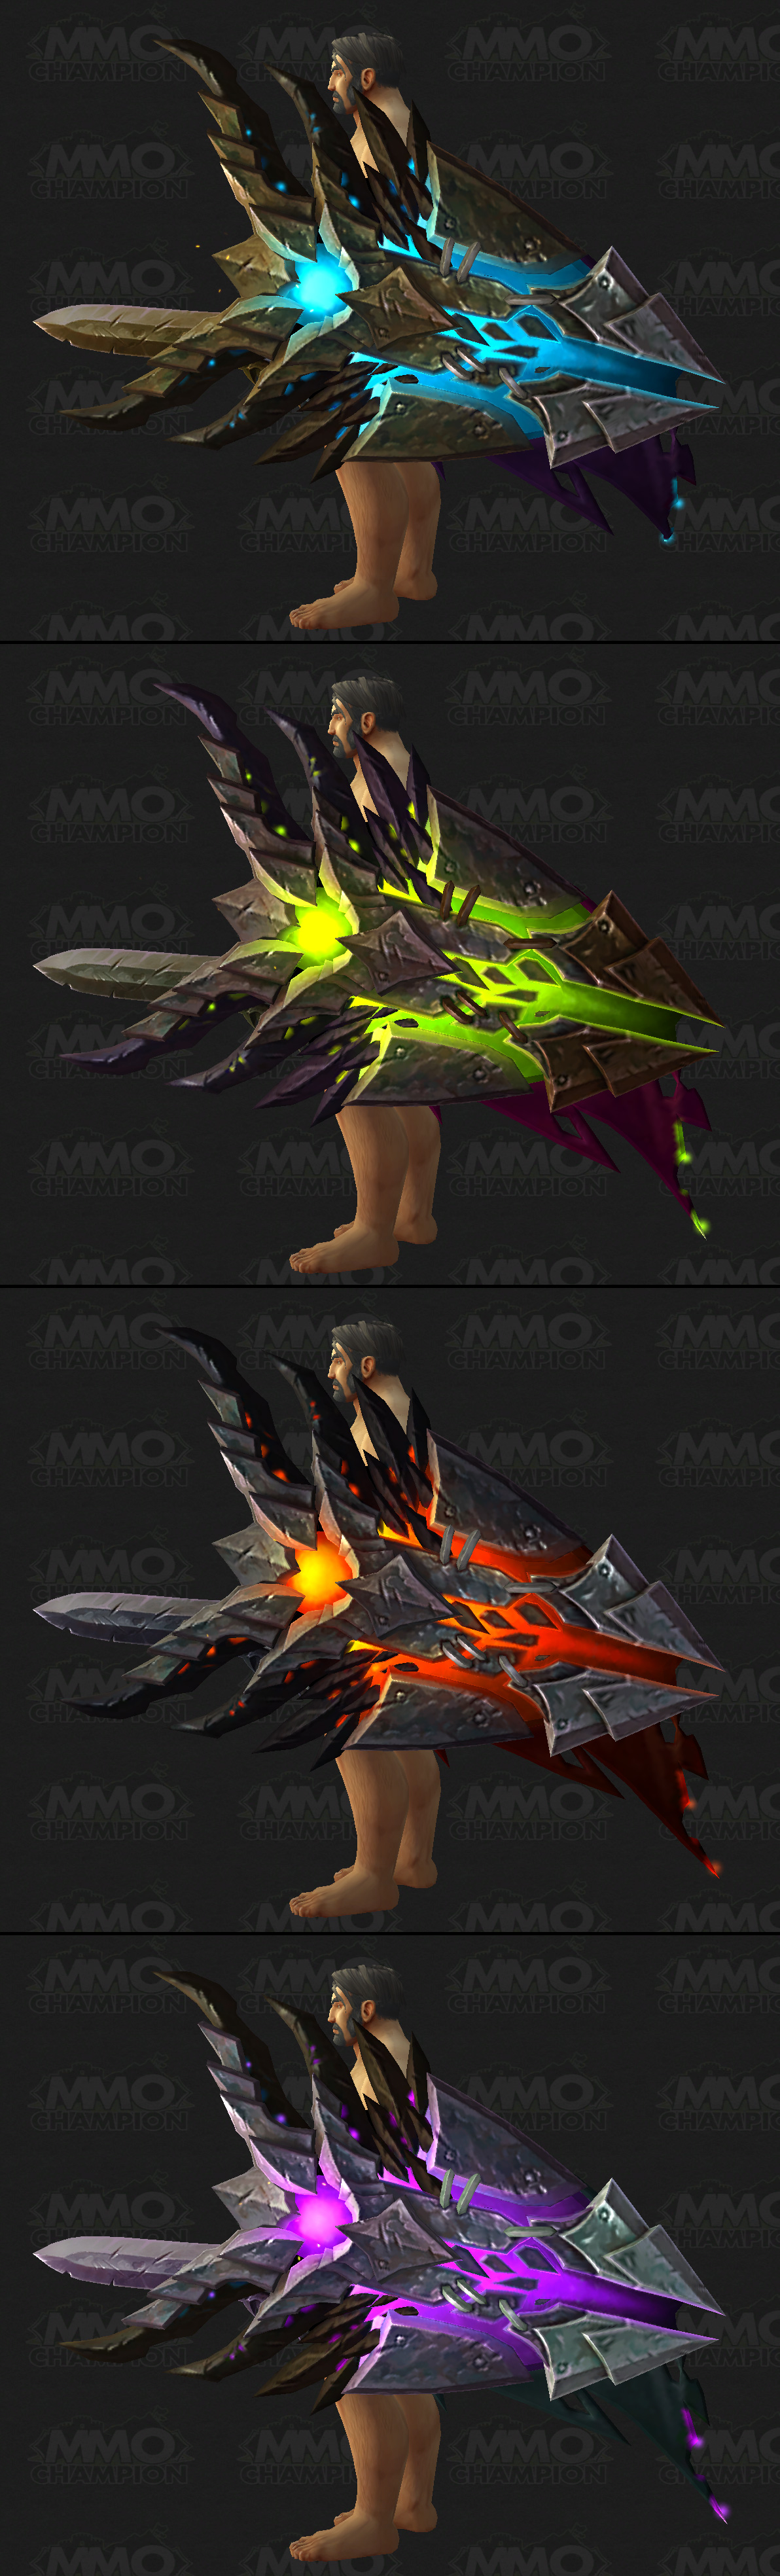 MMO-Champion]Protection Warrior Artifact, Tweets, Protection